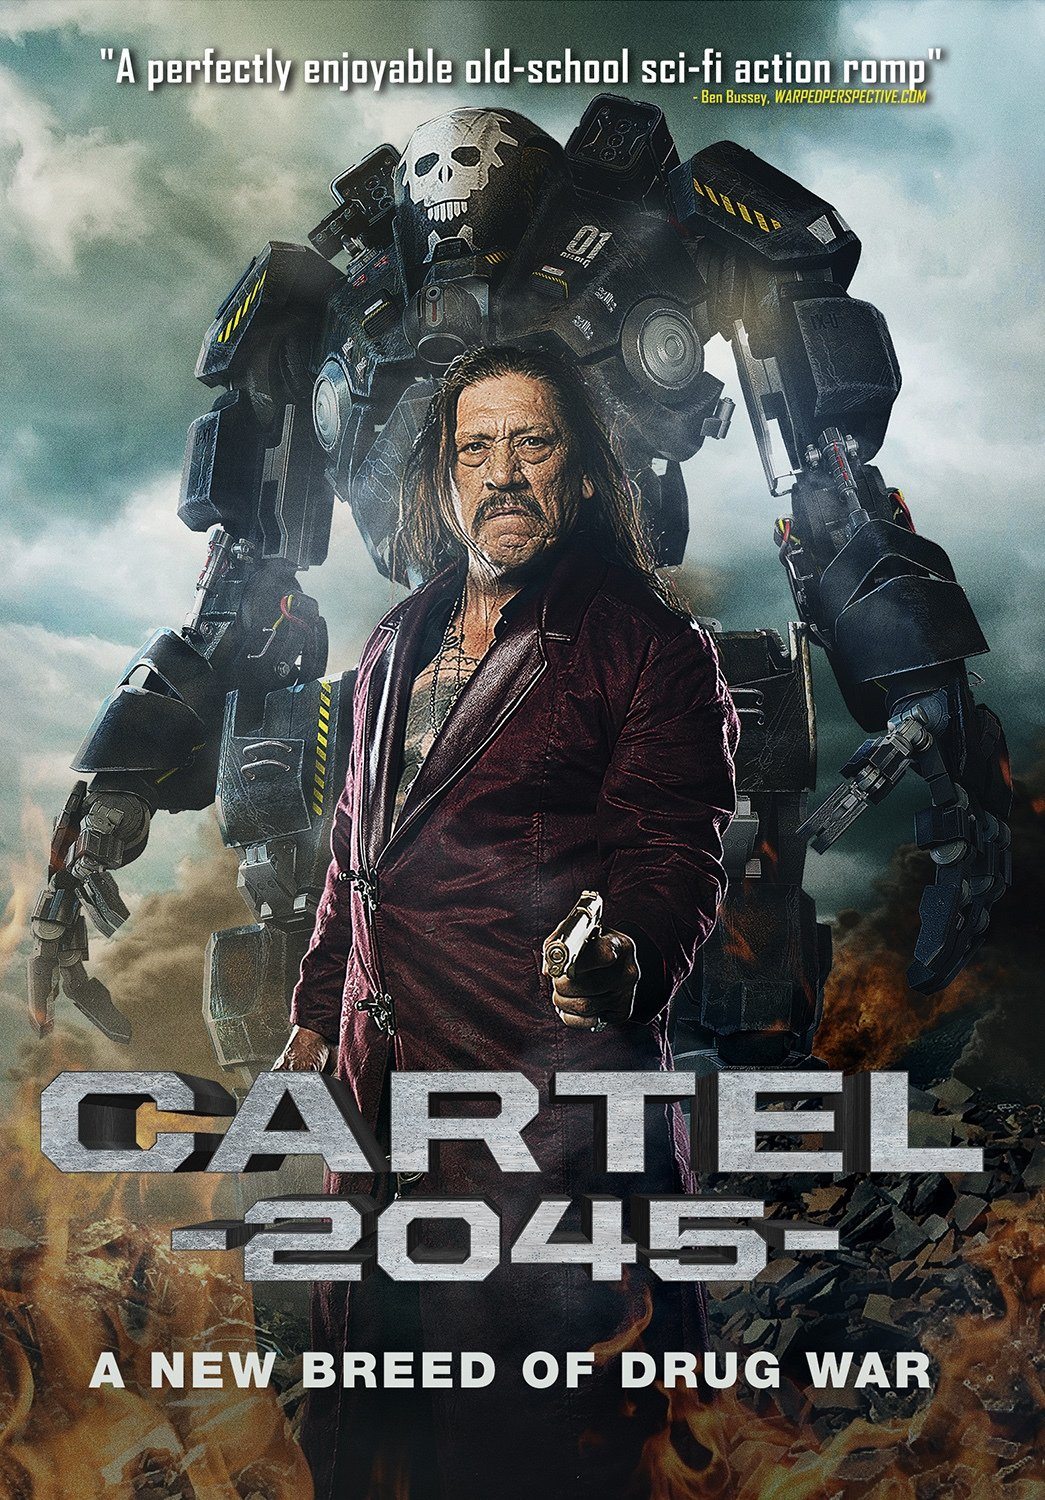 Amazon.com: Cartel 2045: Chris Le, Ramone Garibay, Rocky ...